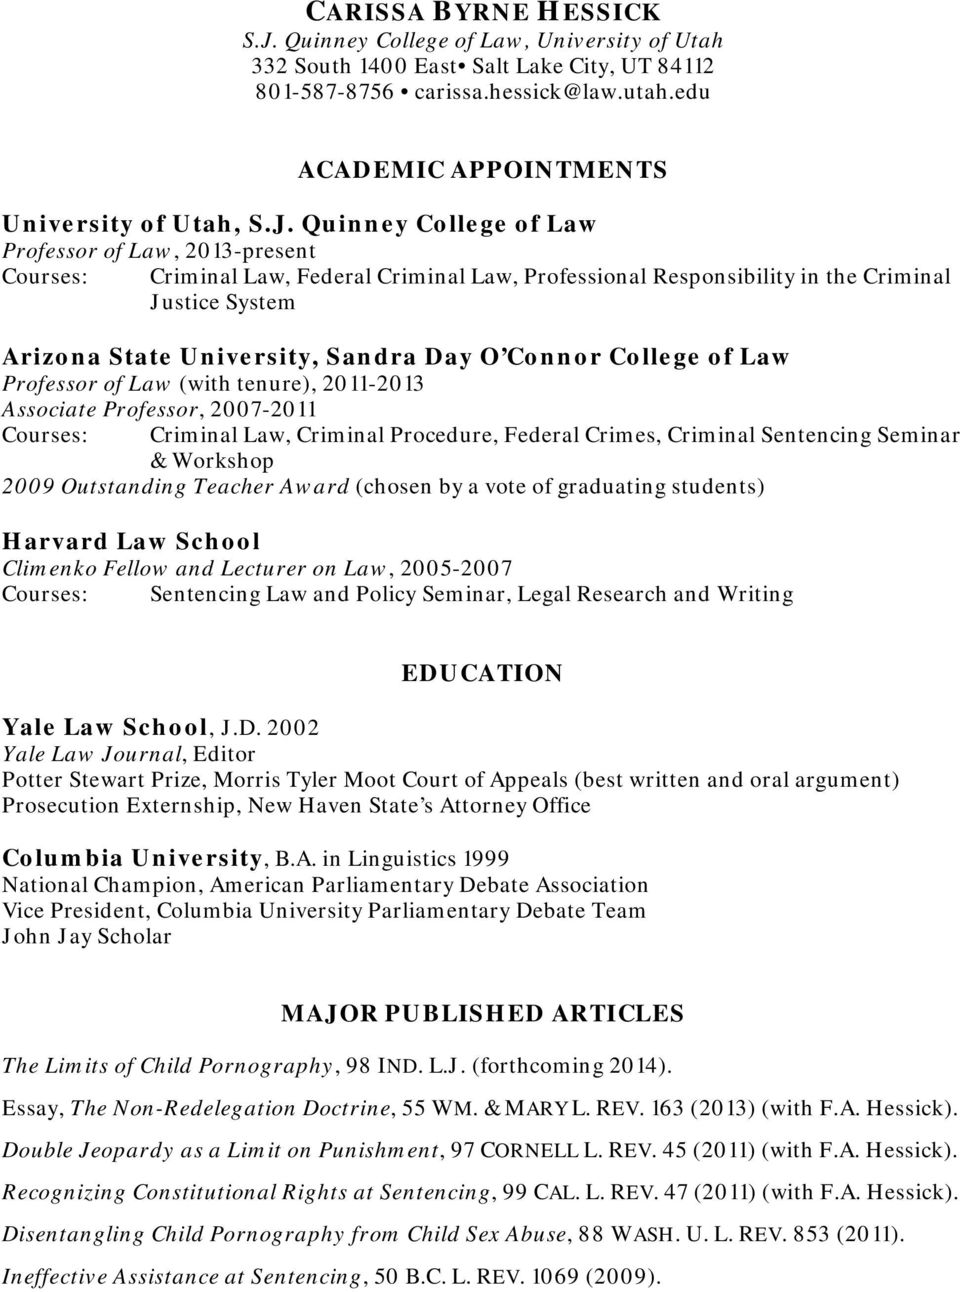 Quinney College of Law Professor of Law, 2013-present Courses: Criminal Law, Federal Criminal Law, Professional Responsibility in the Criminal Justice System Arizona State University, Sandra Day O